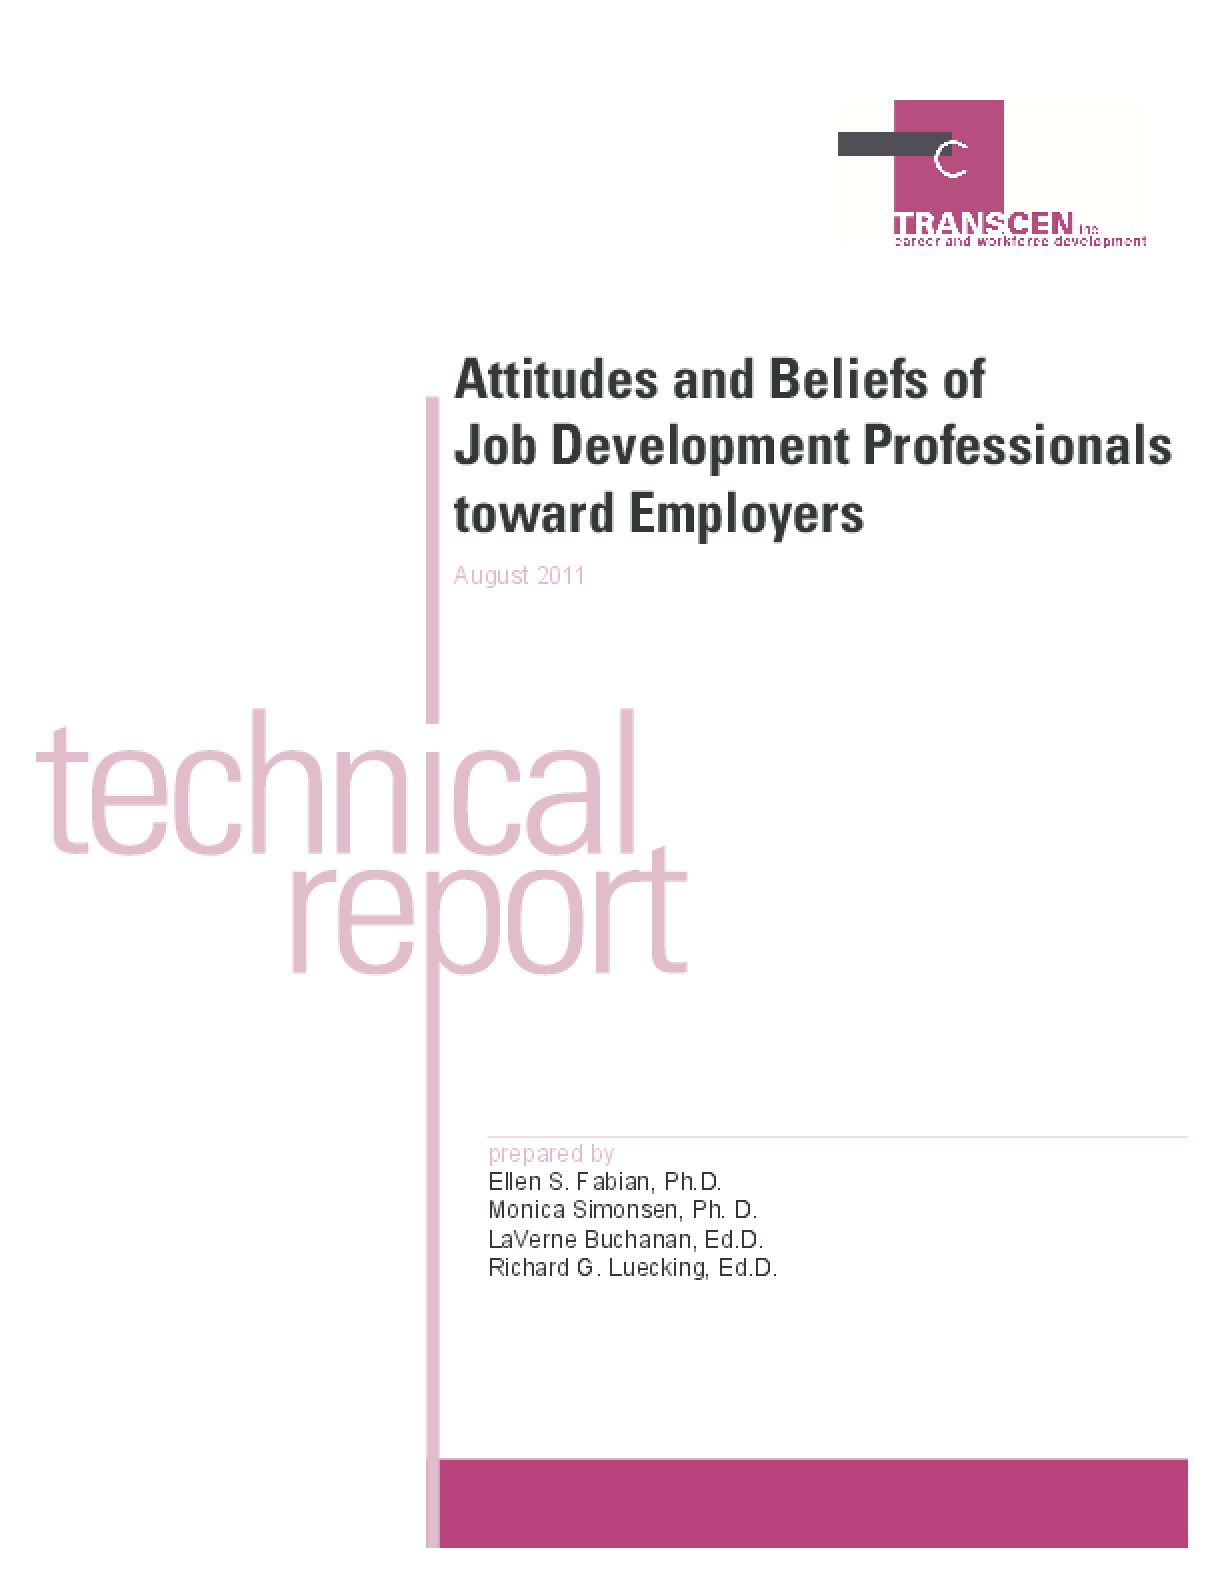 Attitudes and Beliefs of Job Development Professionals Toward Employers